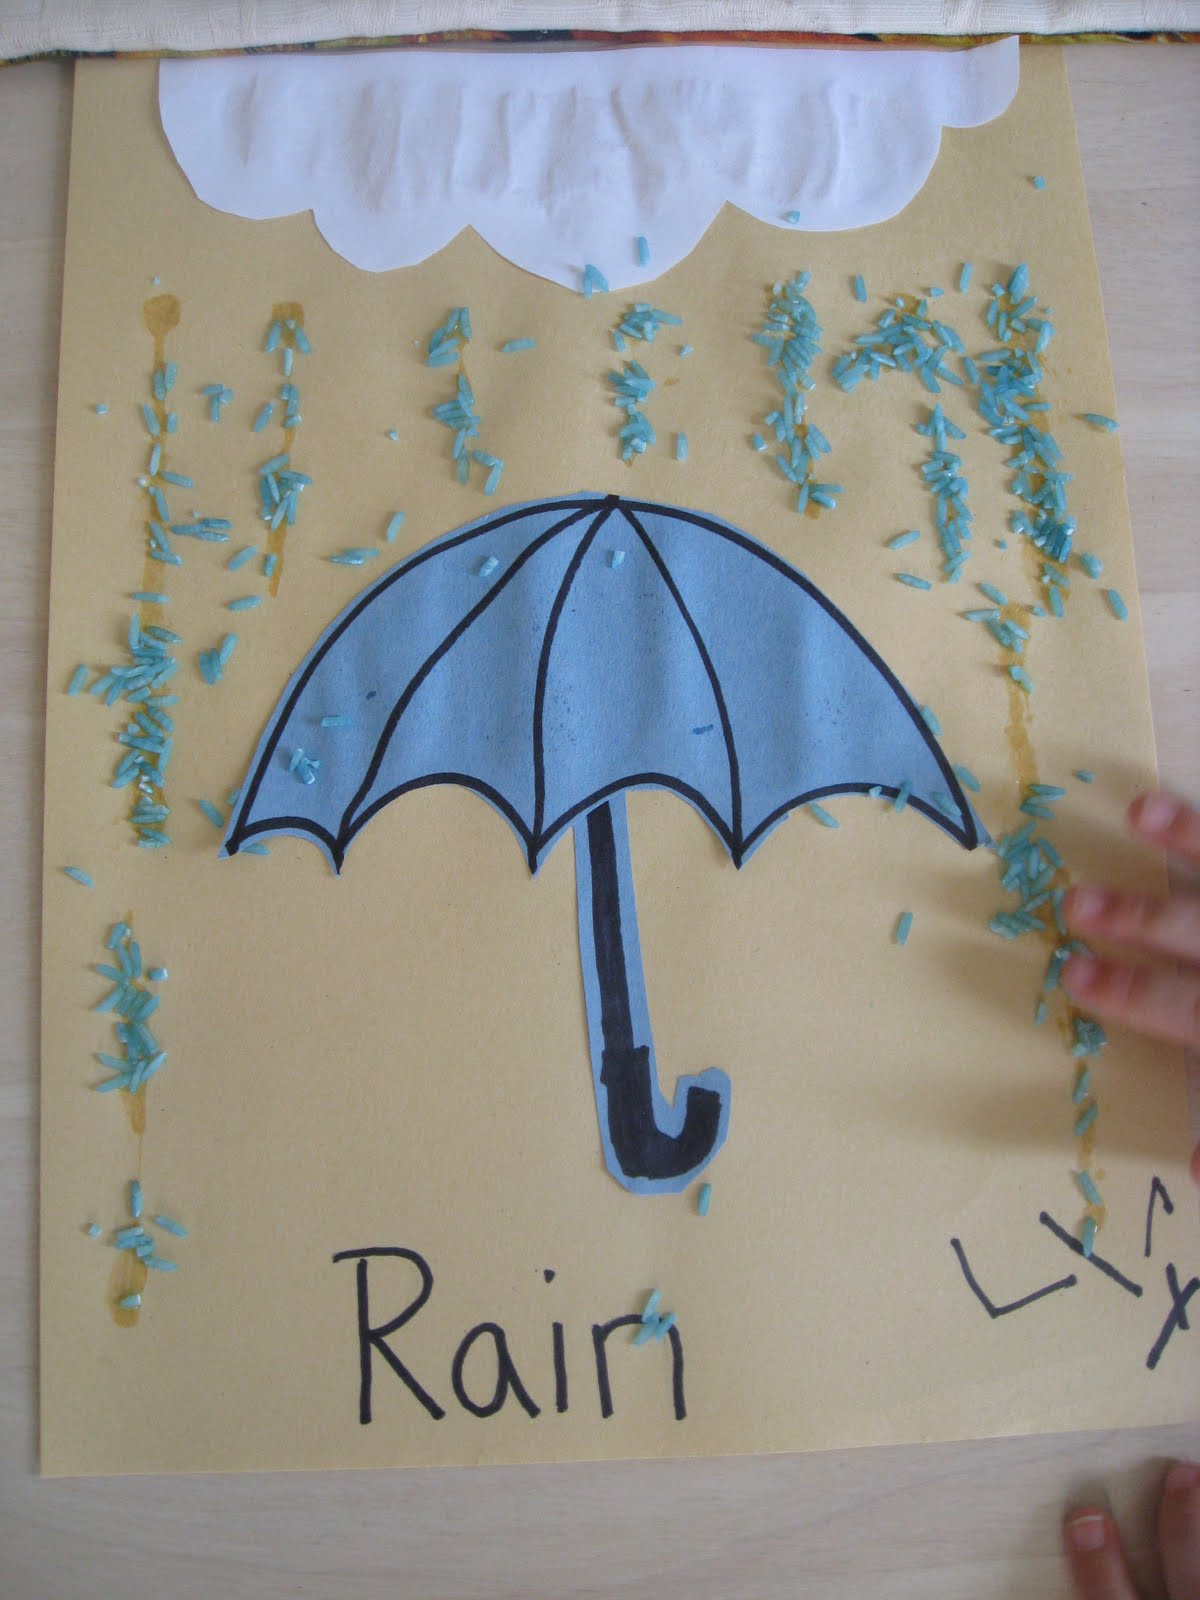 Cut out construction paper umbrella. Have child glue to paper.